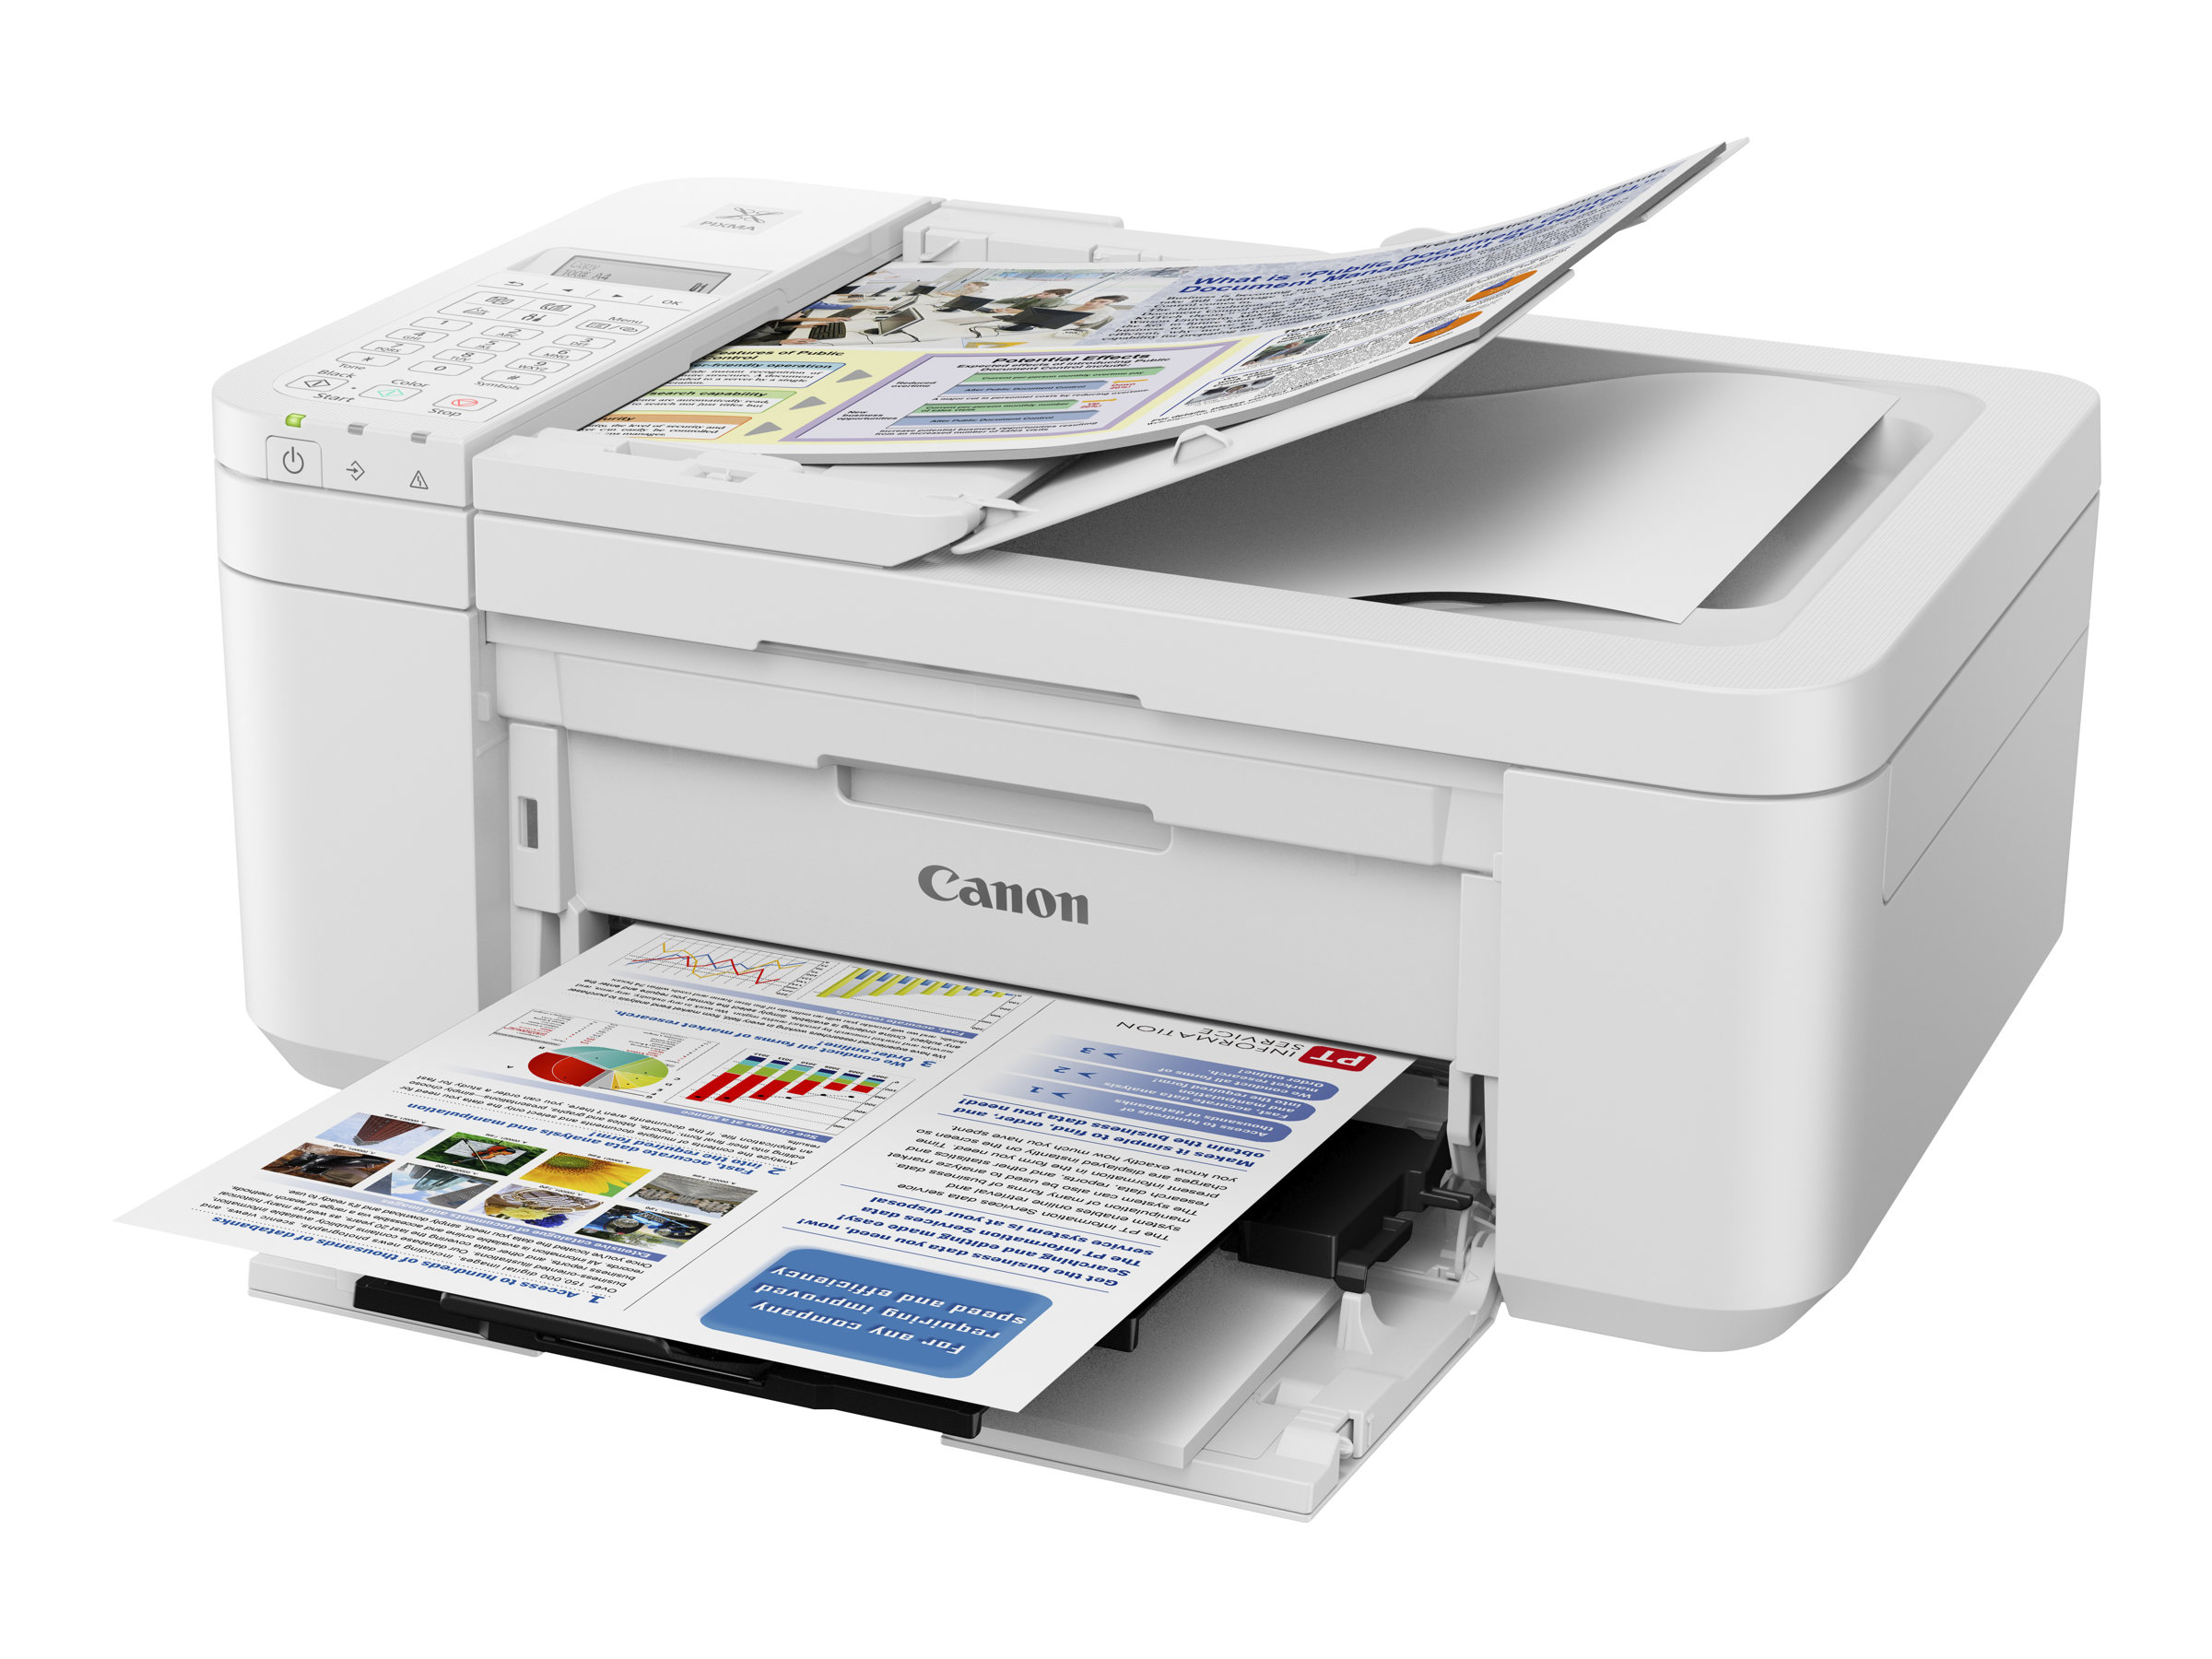 Canon PIXMA TR4551 - Multifunktionsdrucker - Farbe - Tintenstrahl - A4 (210 x 297 mm), Legal (216 x 356 mm) (Original) - A4/Lega